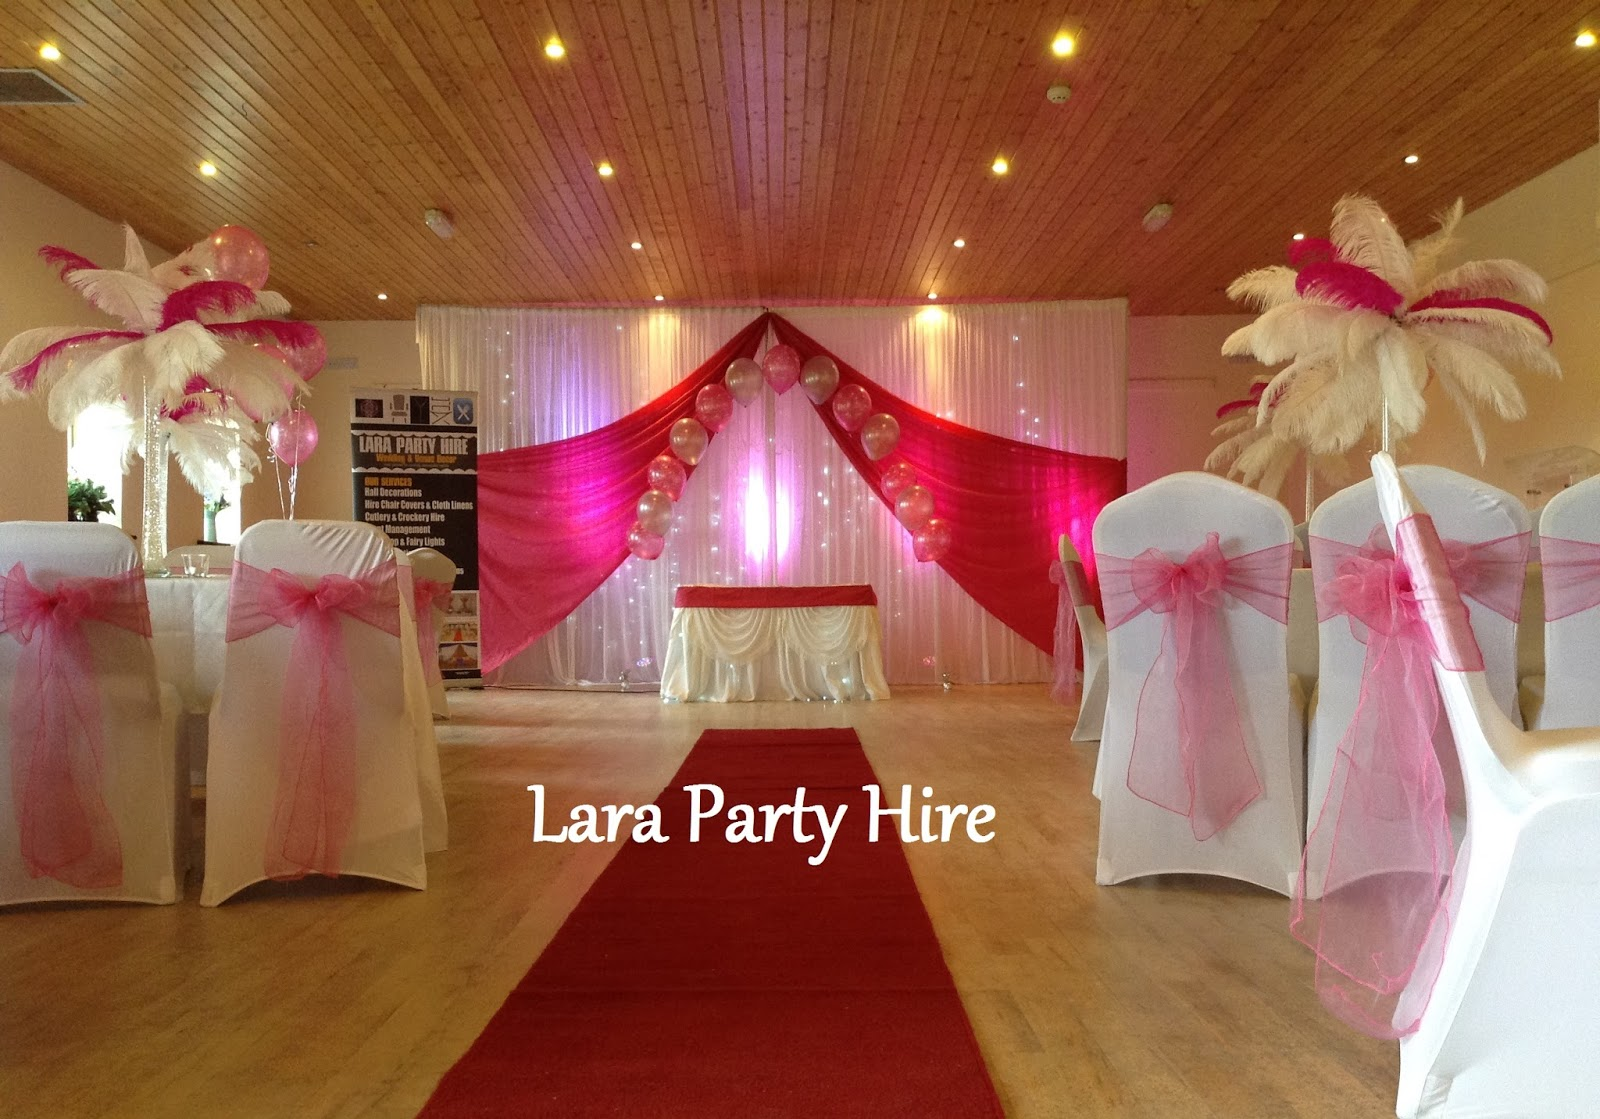 lara party hire ceremony packages